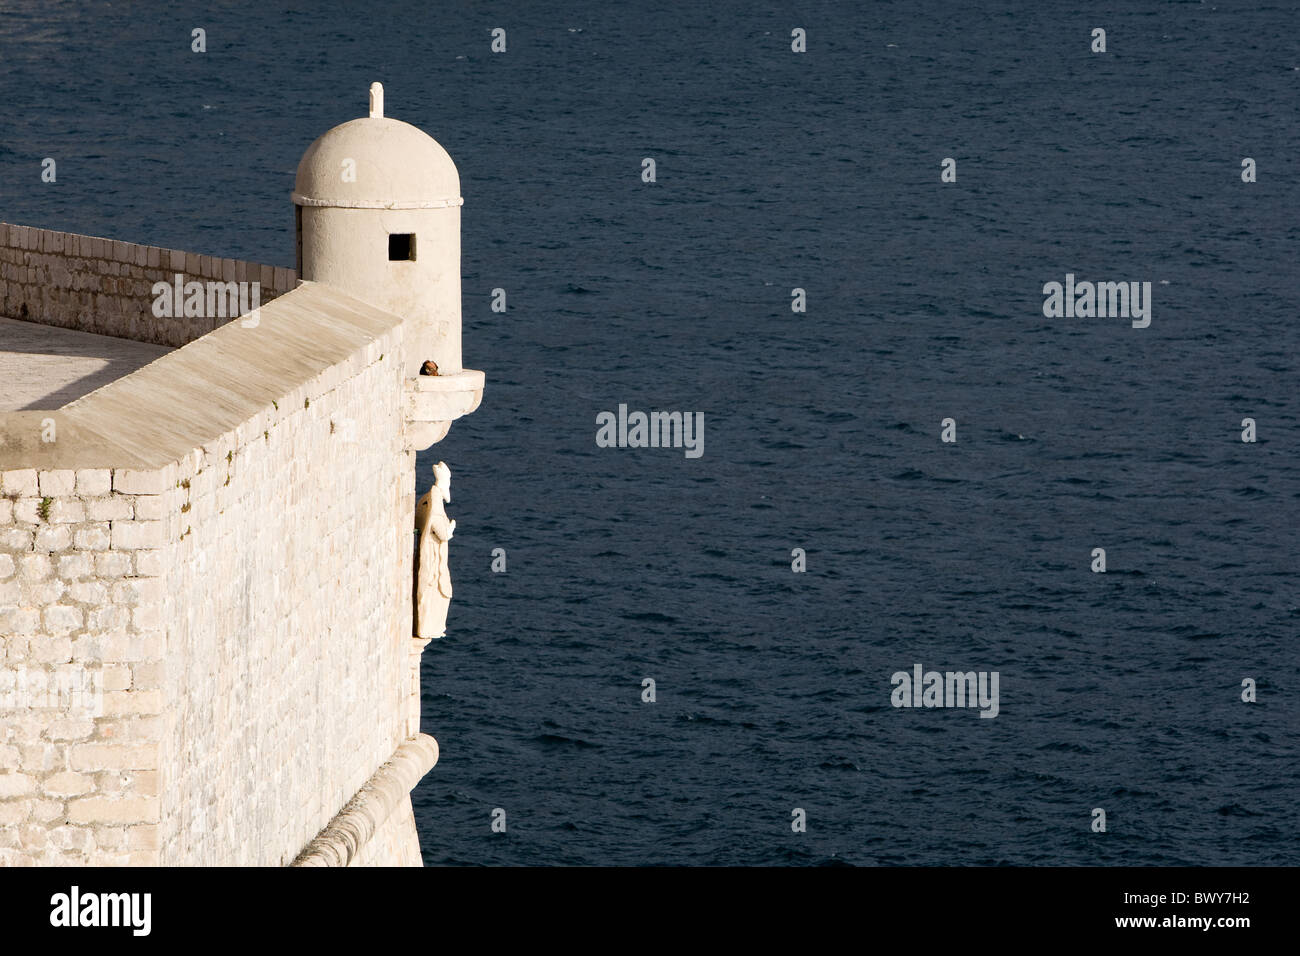 Statue of St Blaise looks over the Adriatic Sea from the Old Town walls of Dubrovnik, Croatia - Stock Image